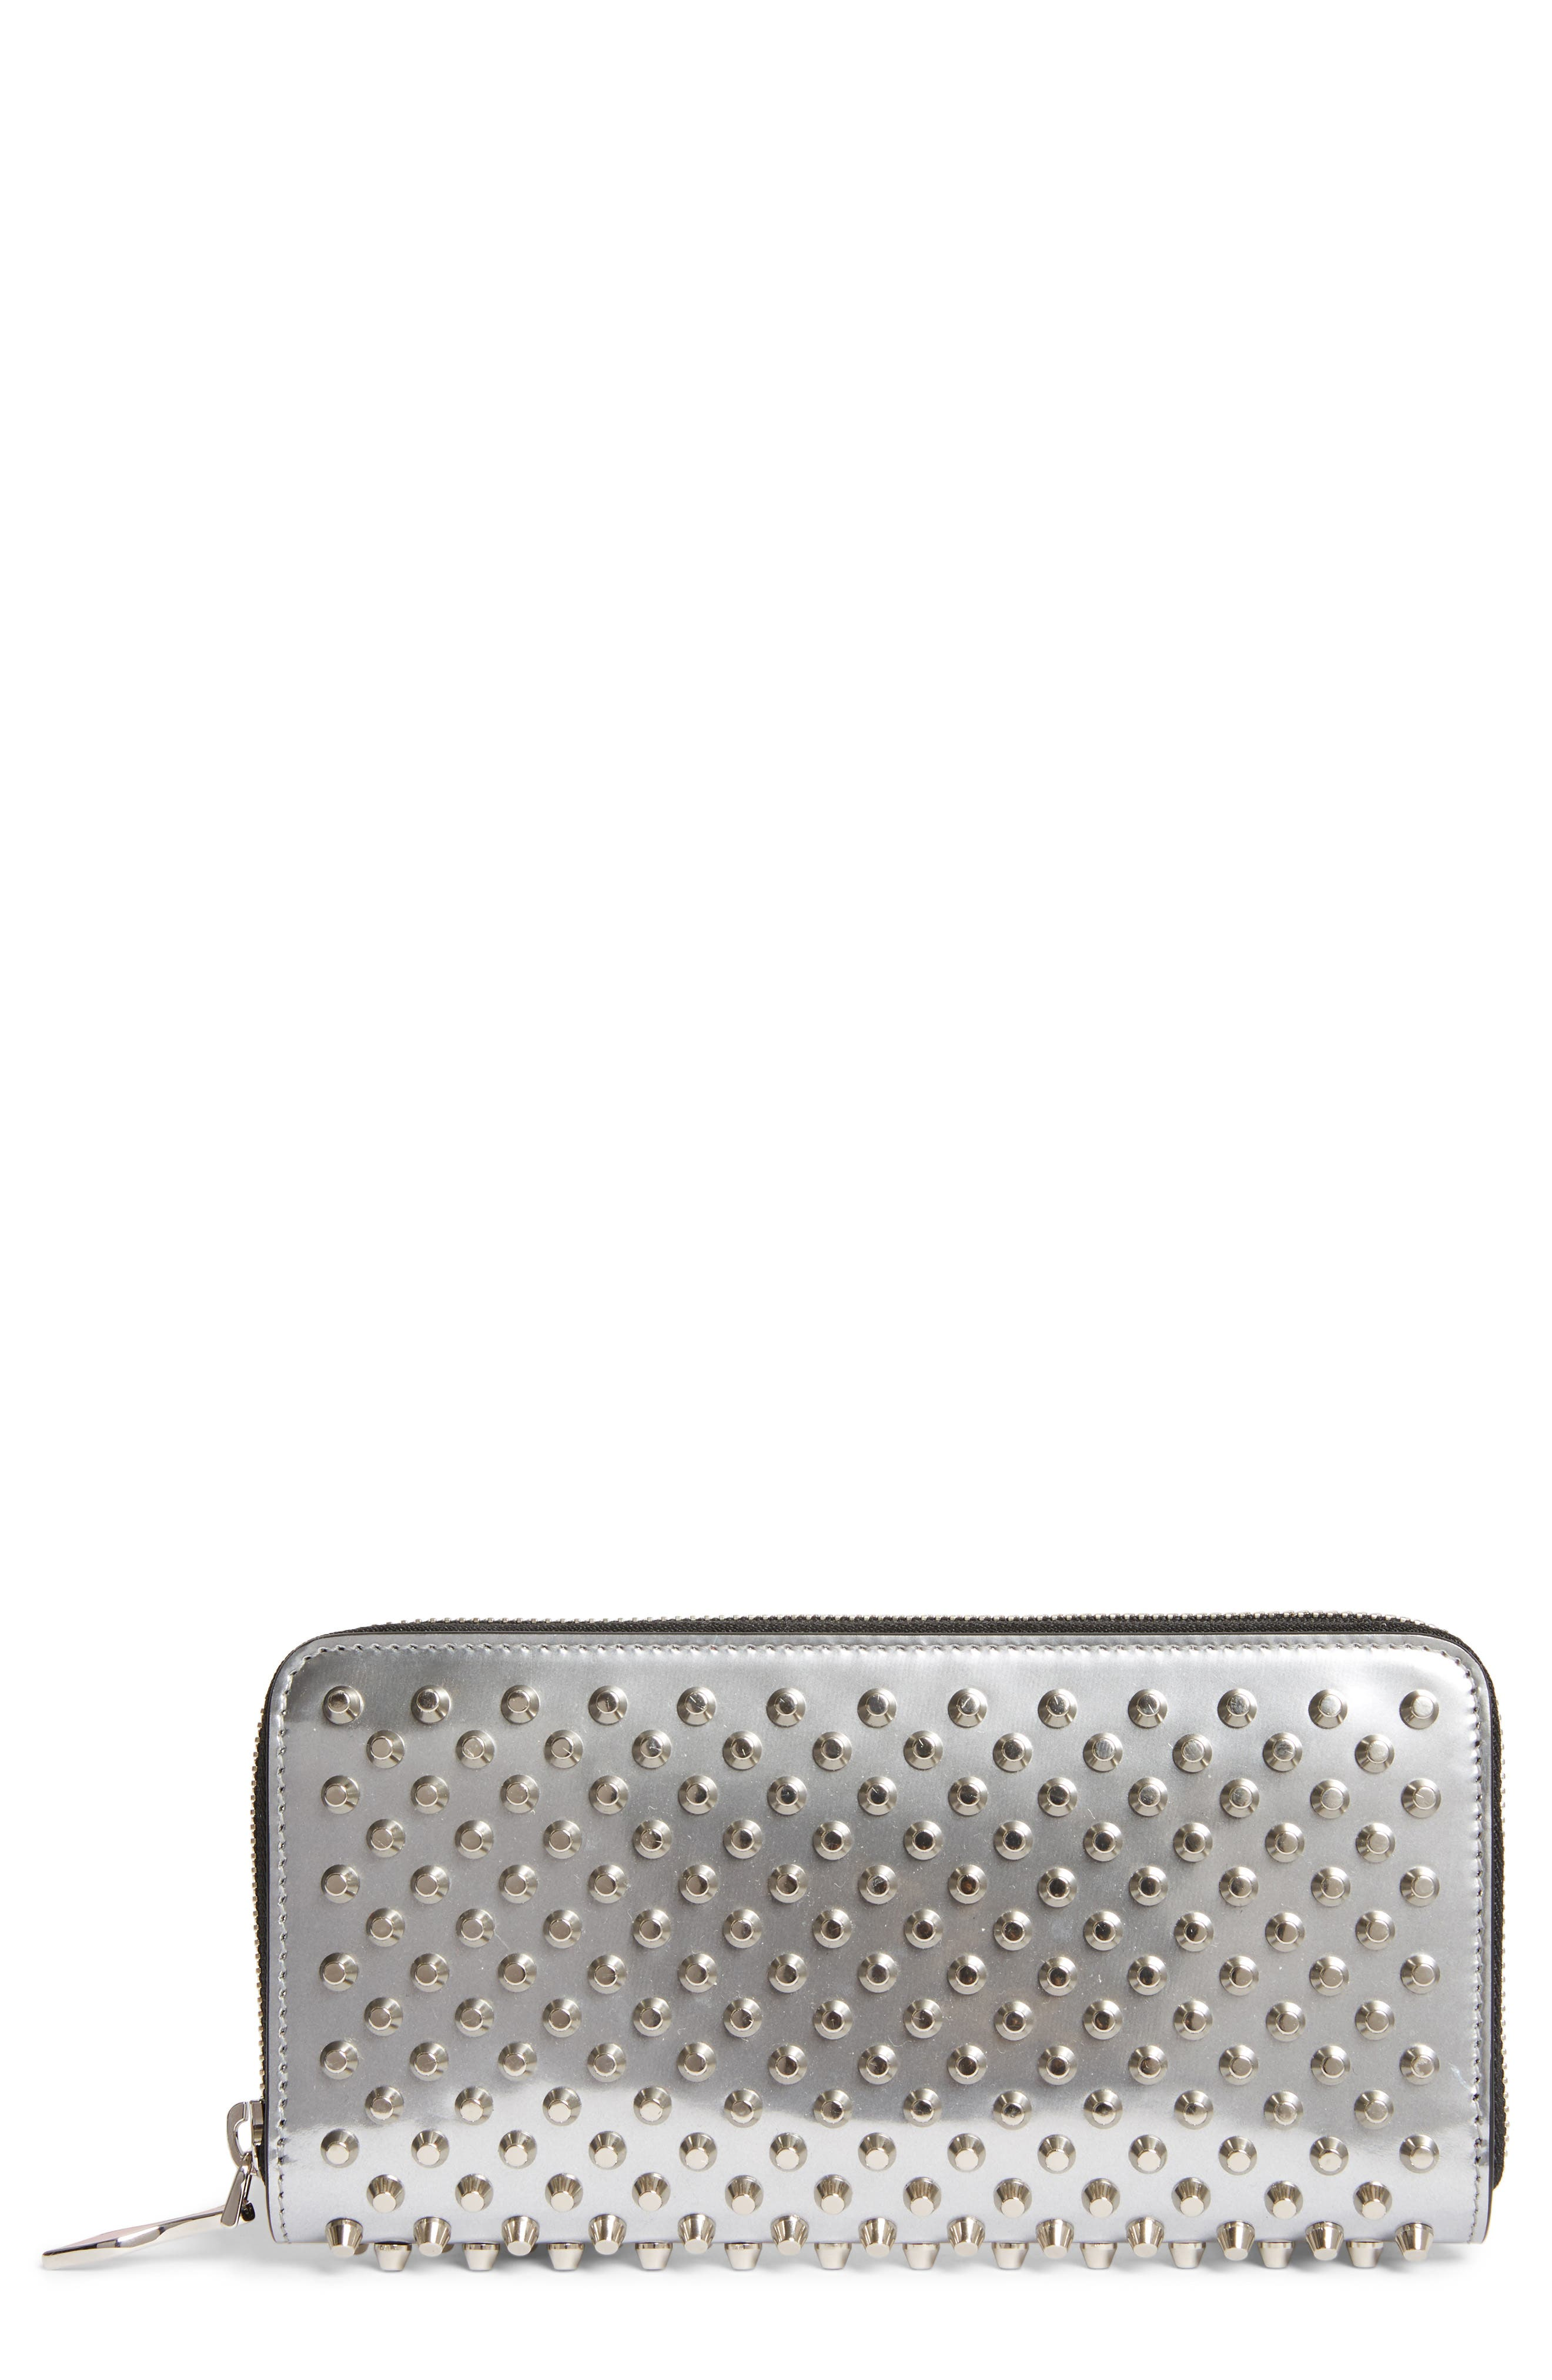 Main Image - Christian Louboutin Panettone Spiked Metallic Leather Wallet